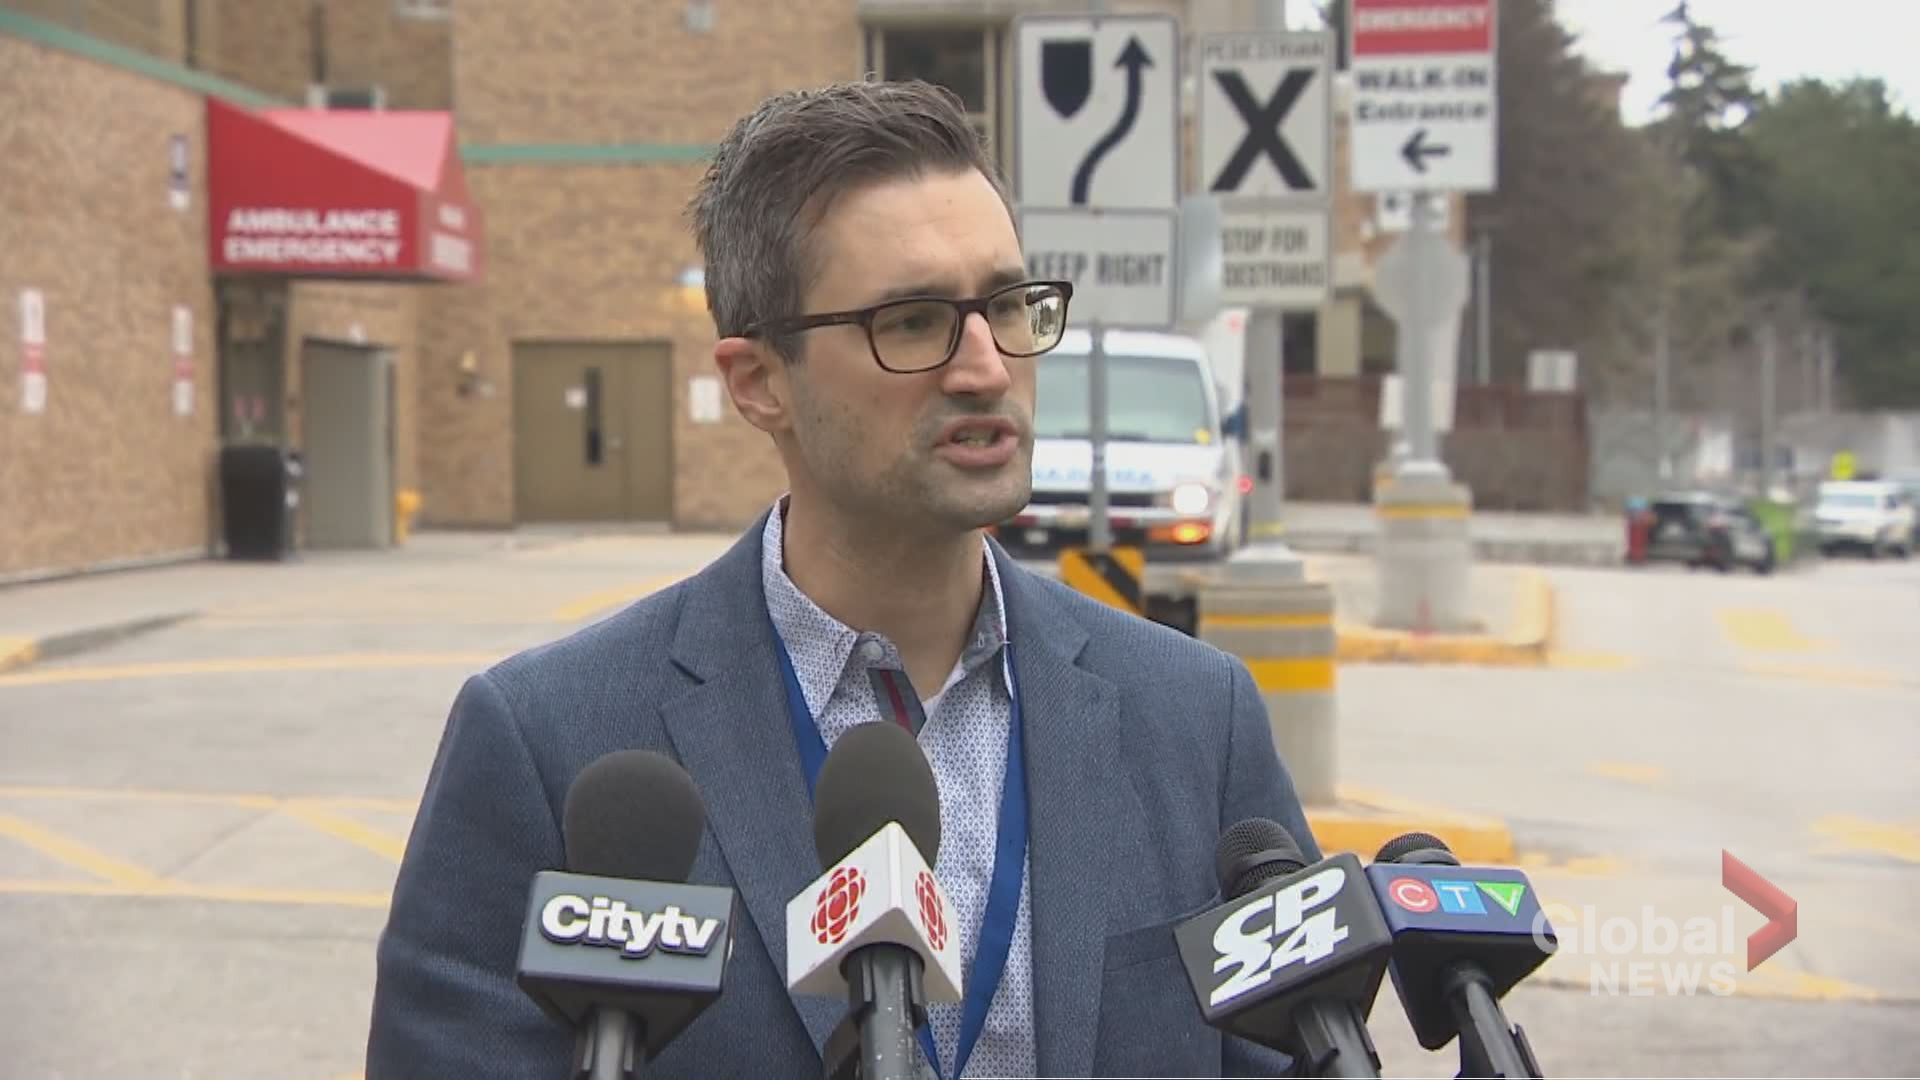 First point of contact for those concerned about infection should be Ontario Health: Sunnybrook